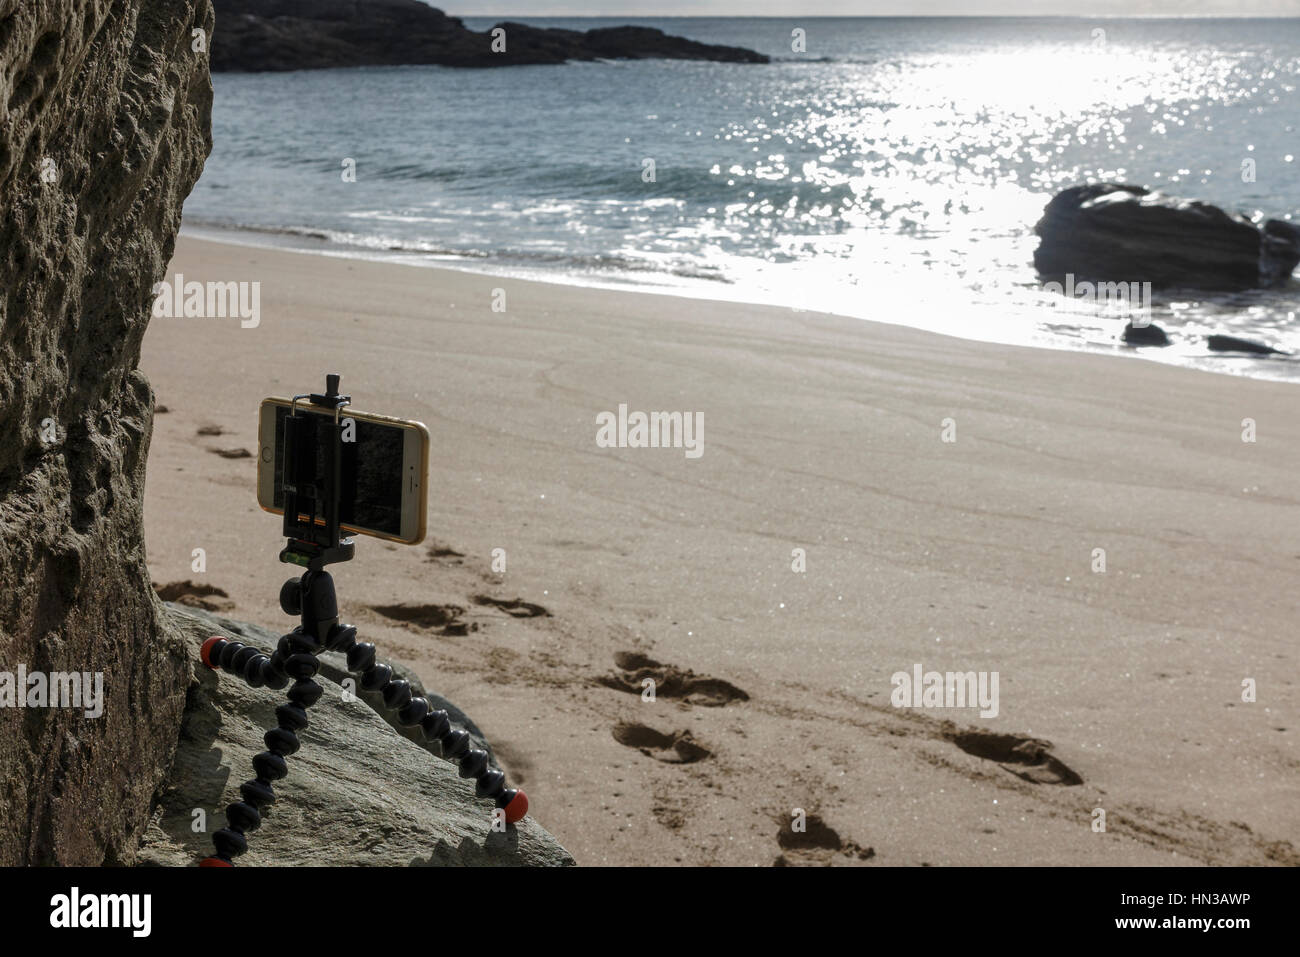 Using a small 'GorillaPod' tripod with an iphone to photograph beach in Devon - Stock Image